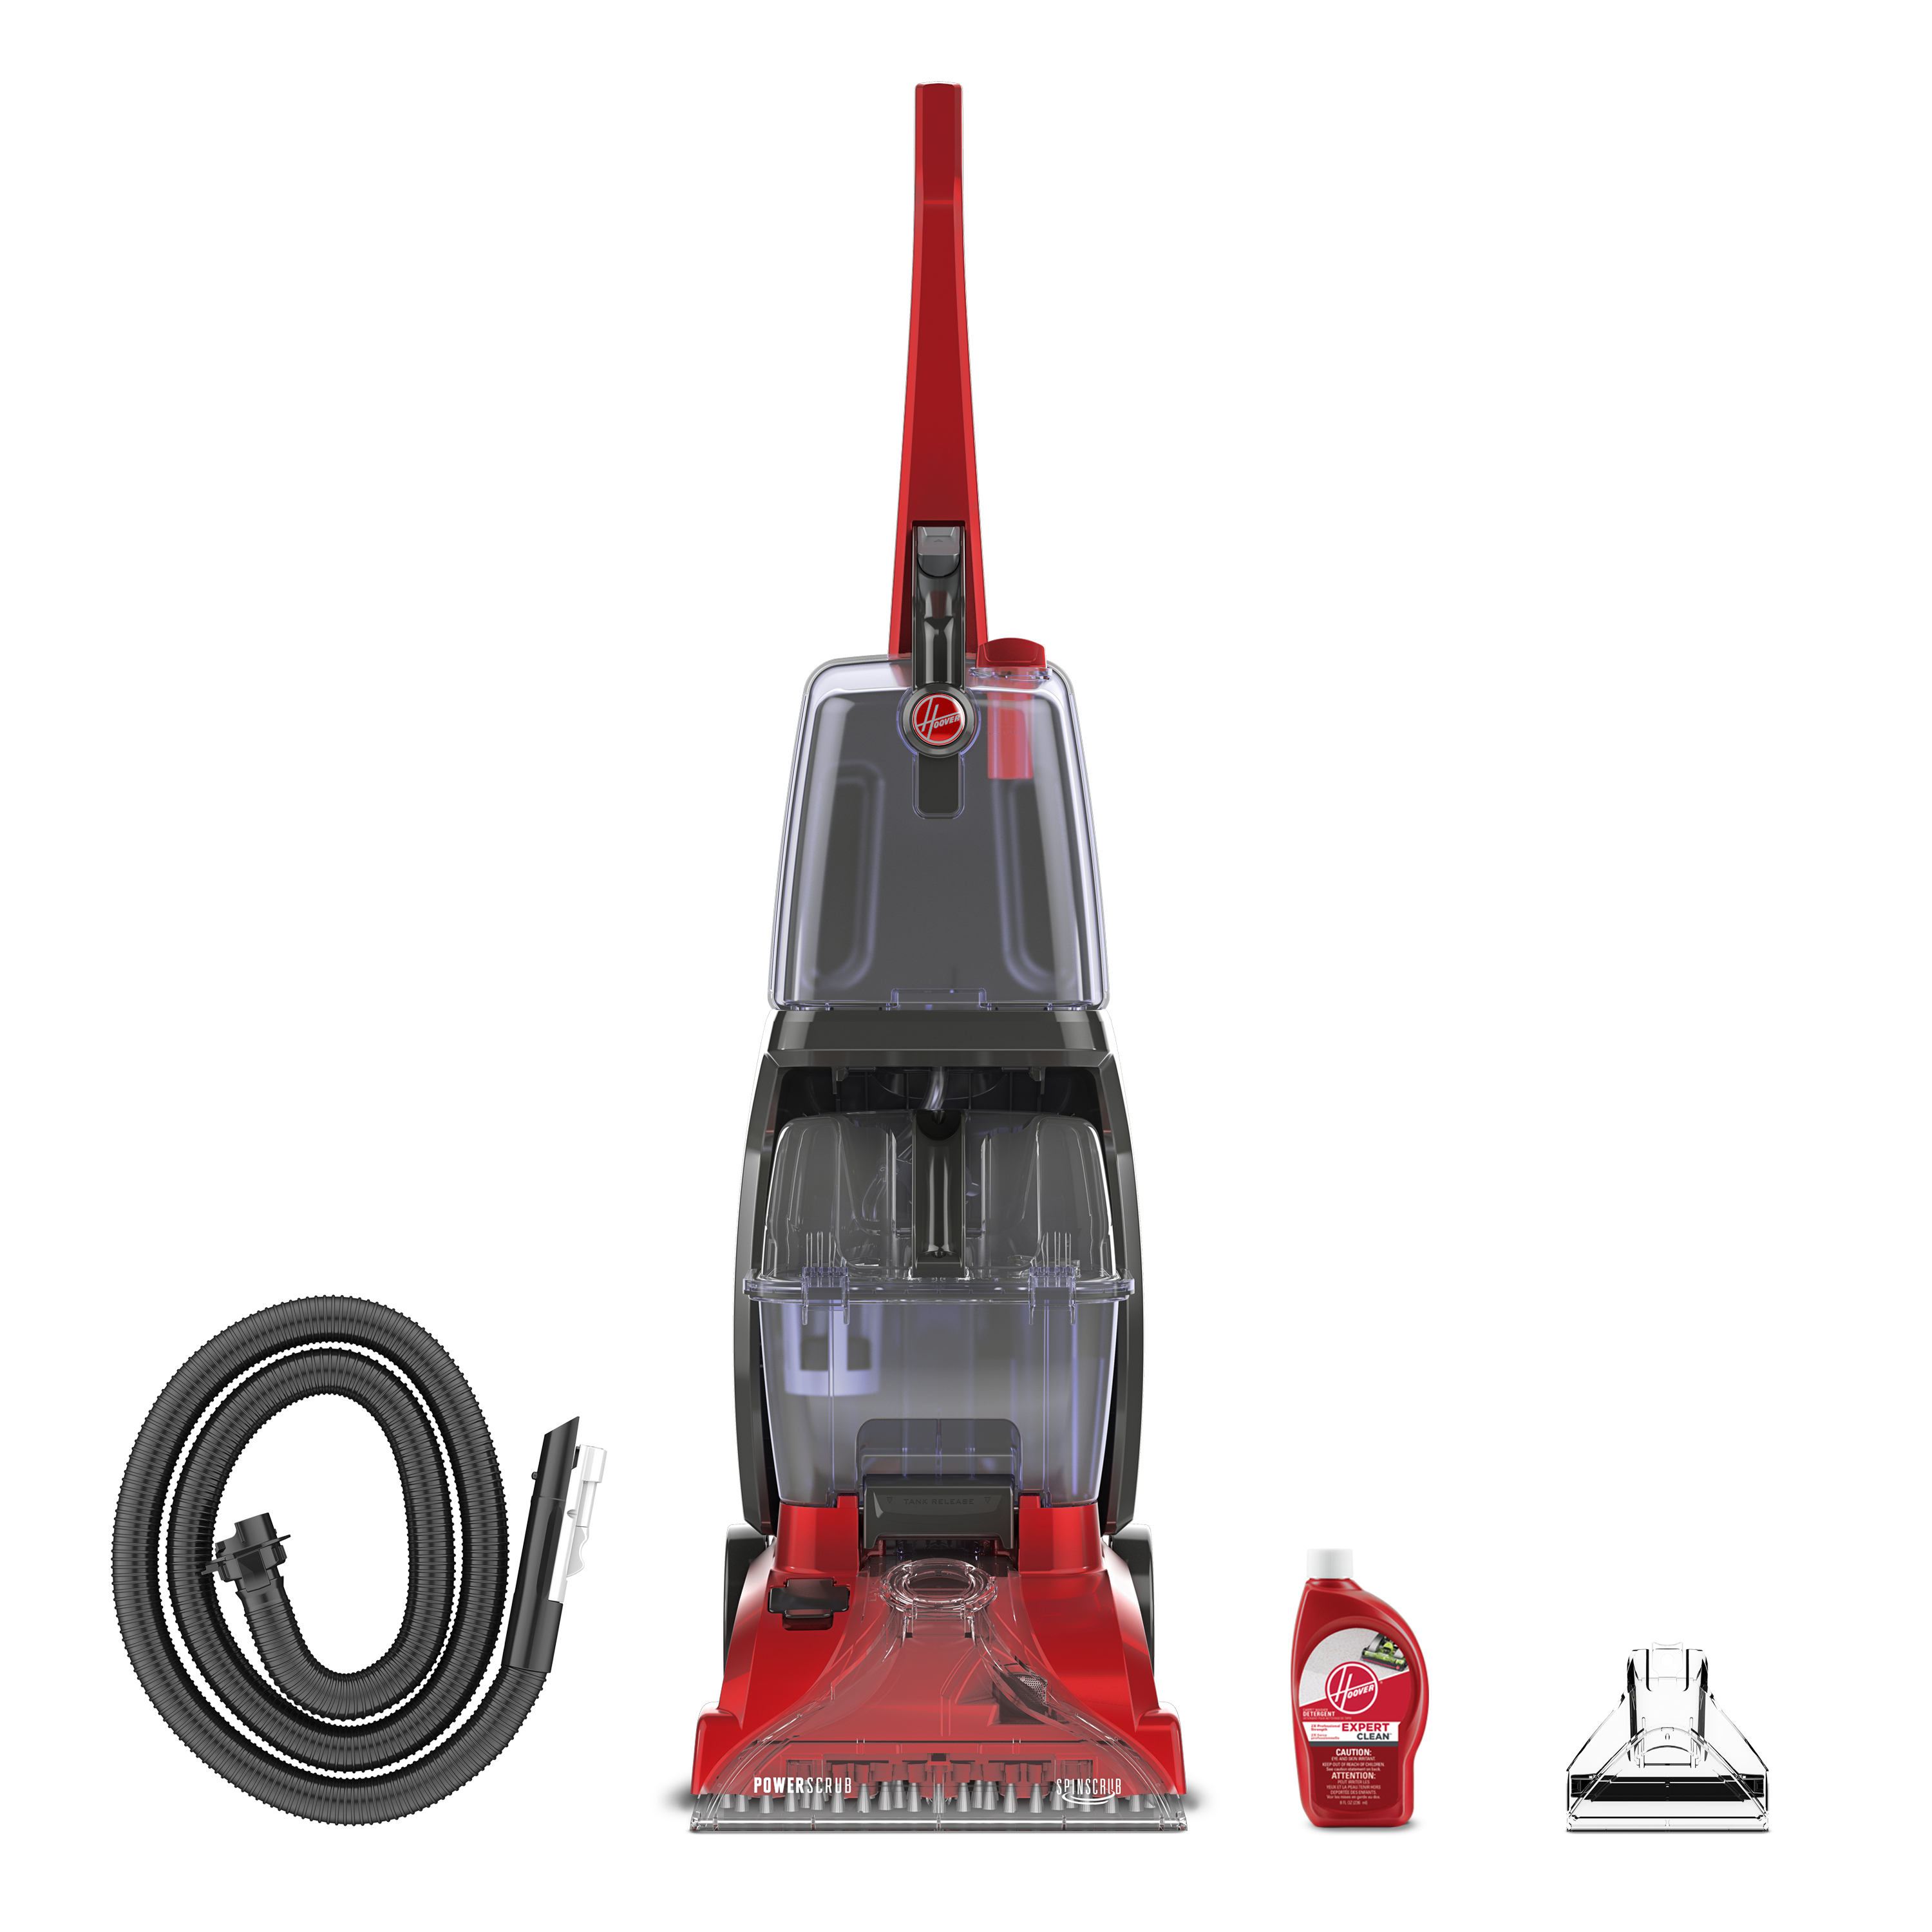 Hoover Power Scrub Carpet Cleaner w/ SpinScrub Technology, FH50135